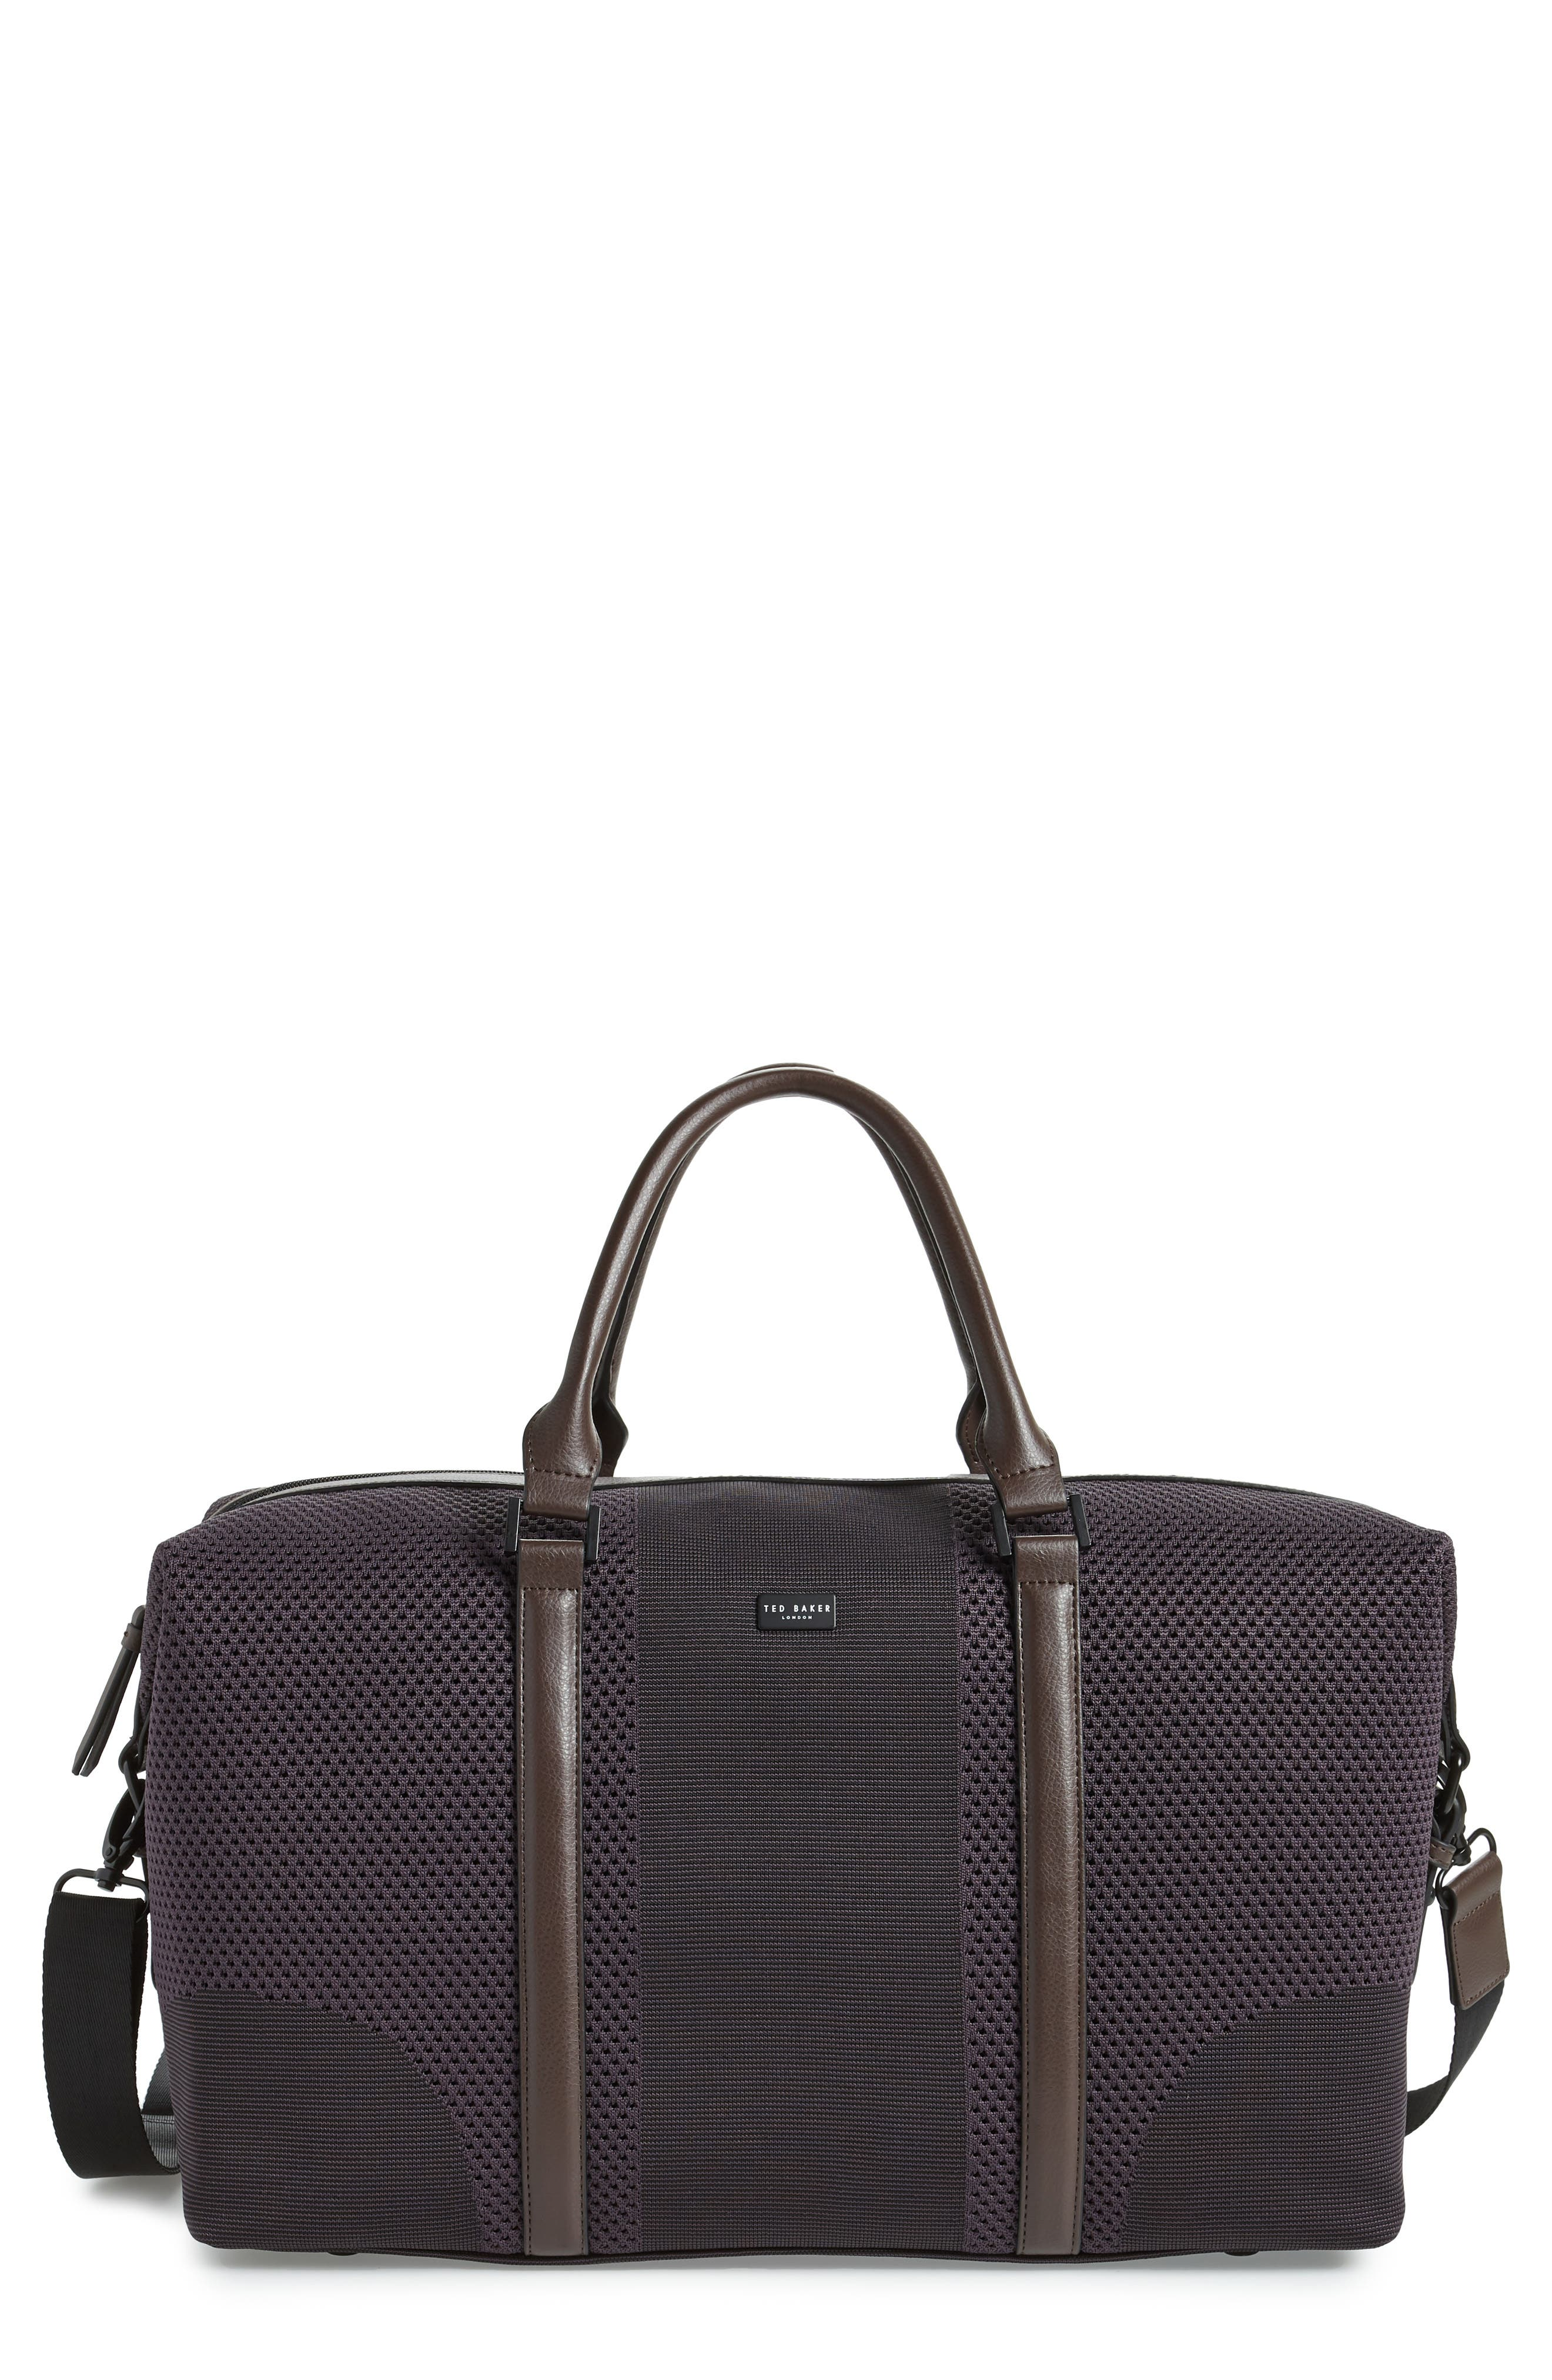 TED BAKER LONDON Knit Holdall Duffel Bag, Main, color, 531